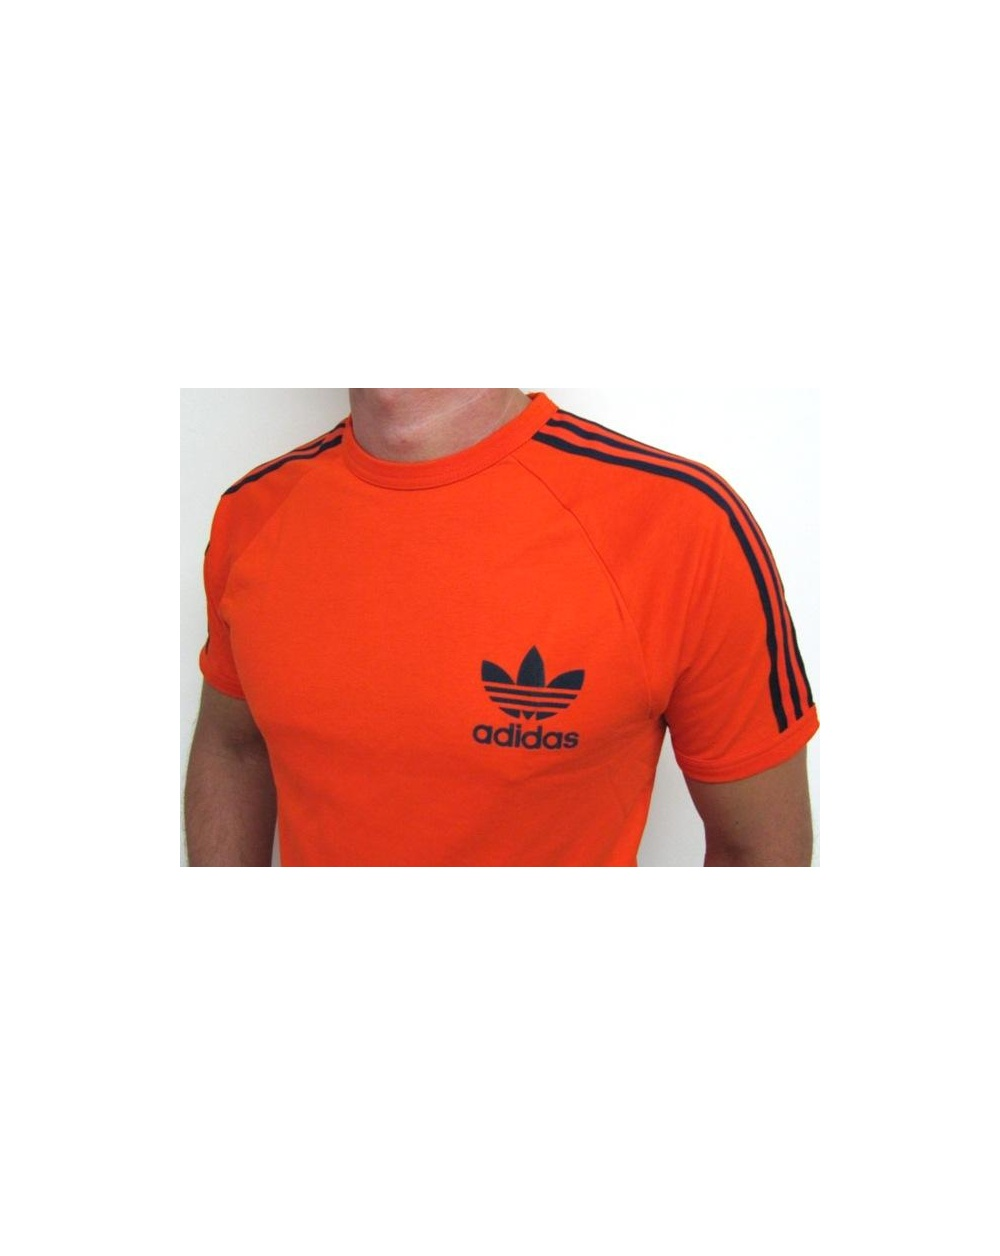 Adidas originals trefoil 3 stripes t shirt orange adidas for Adidas lotus t shirt